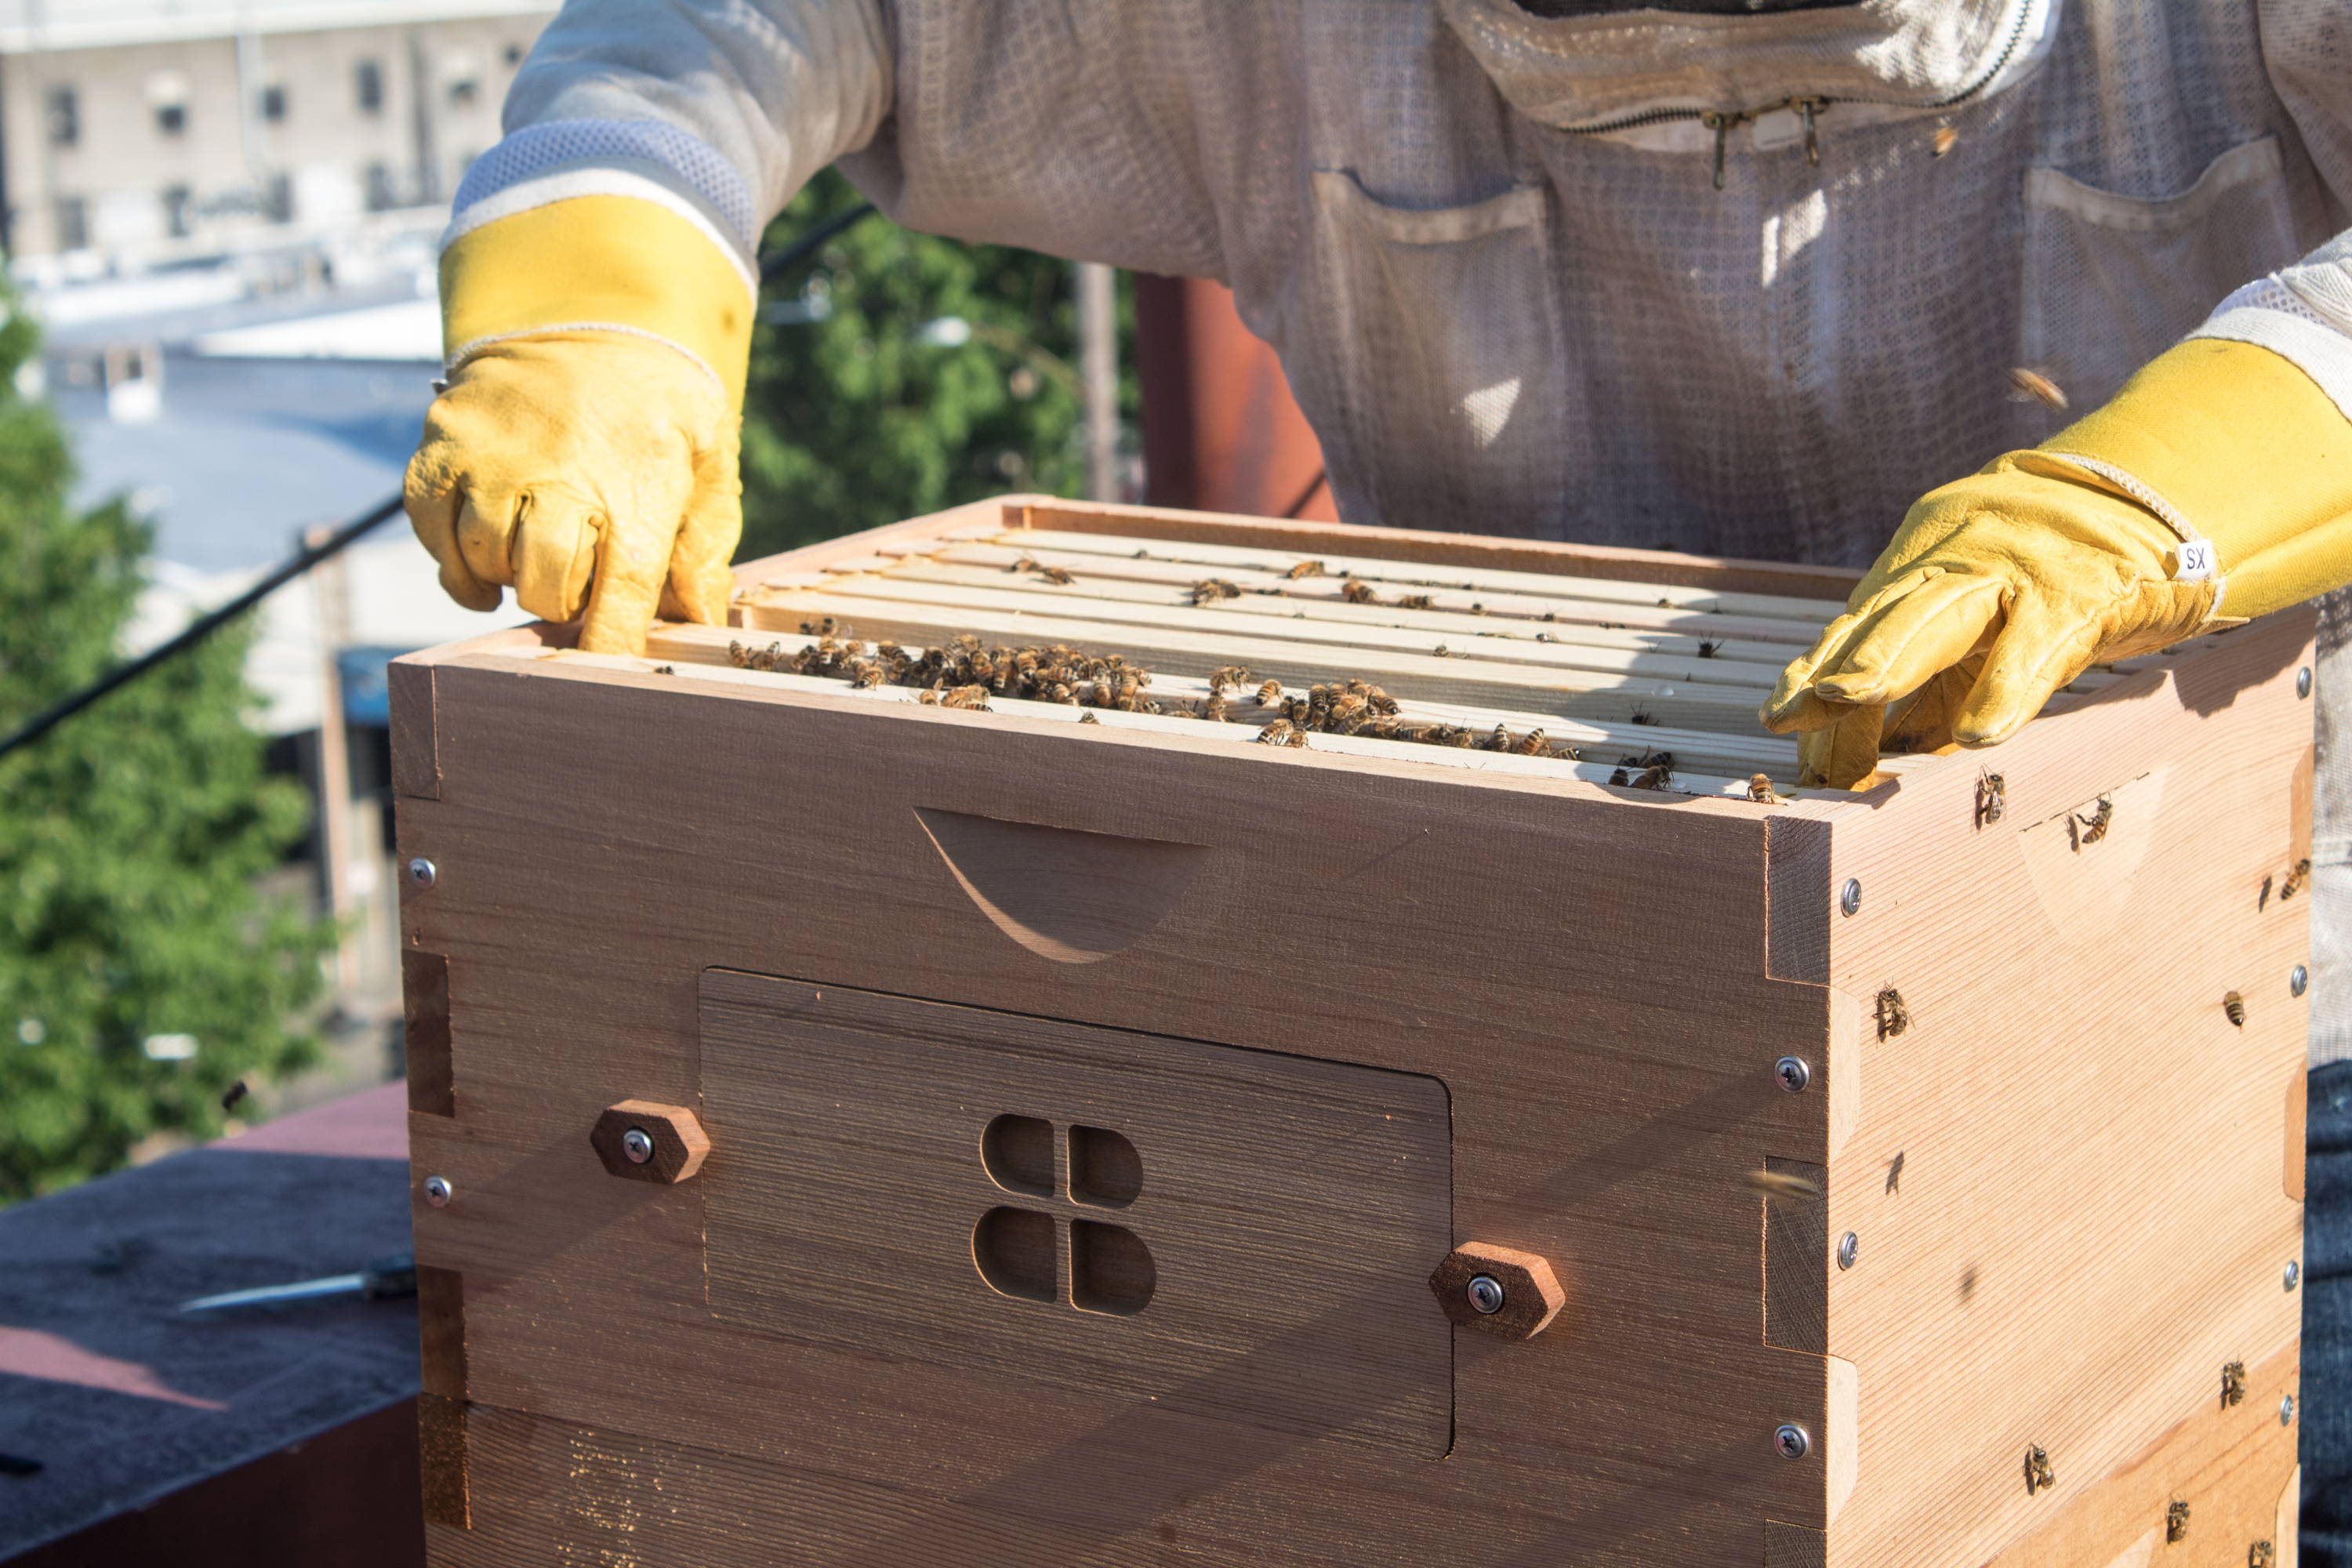 Beekeeping for beginners: where to start Basic tips 13